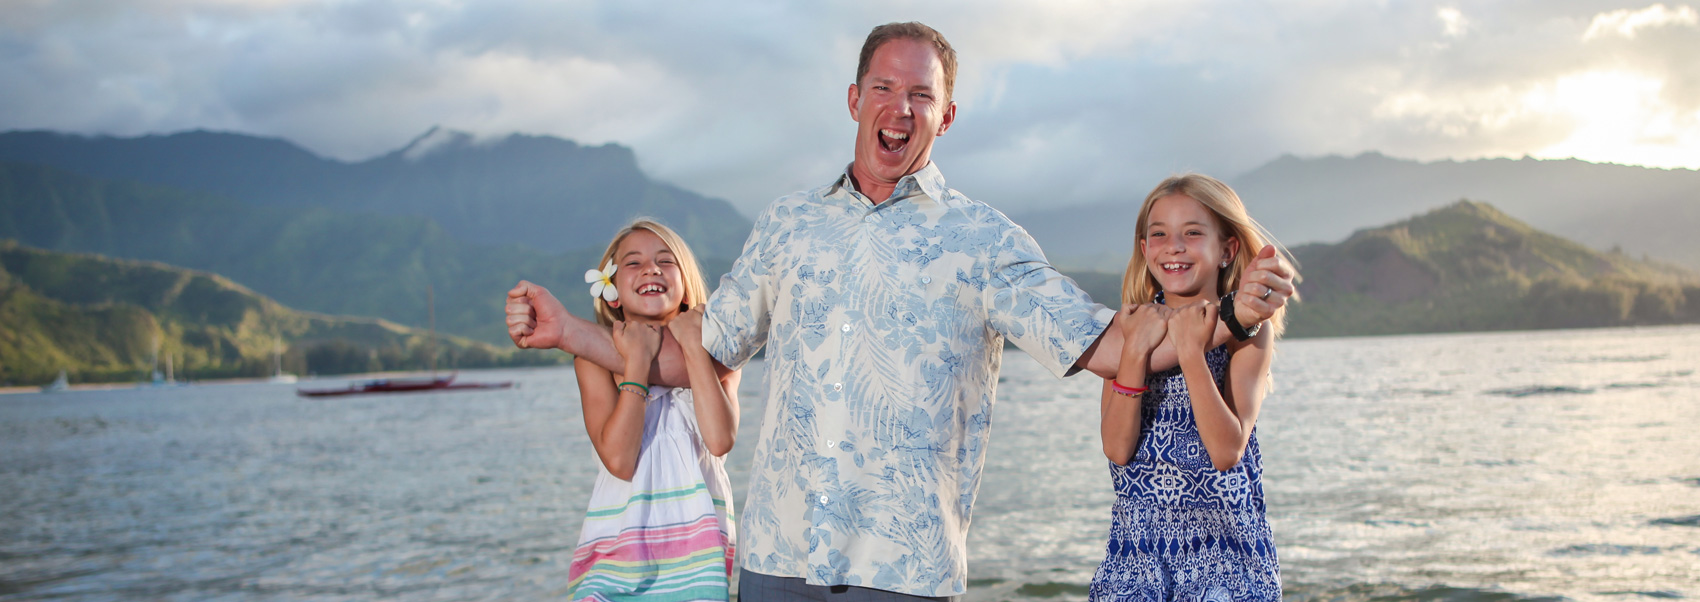 Fun Family Photograph Hawaii